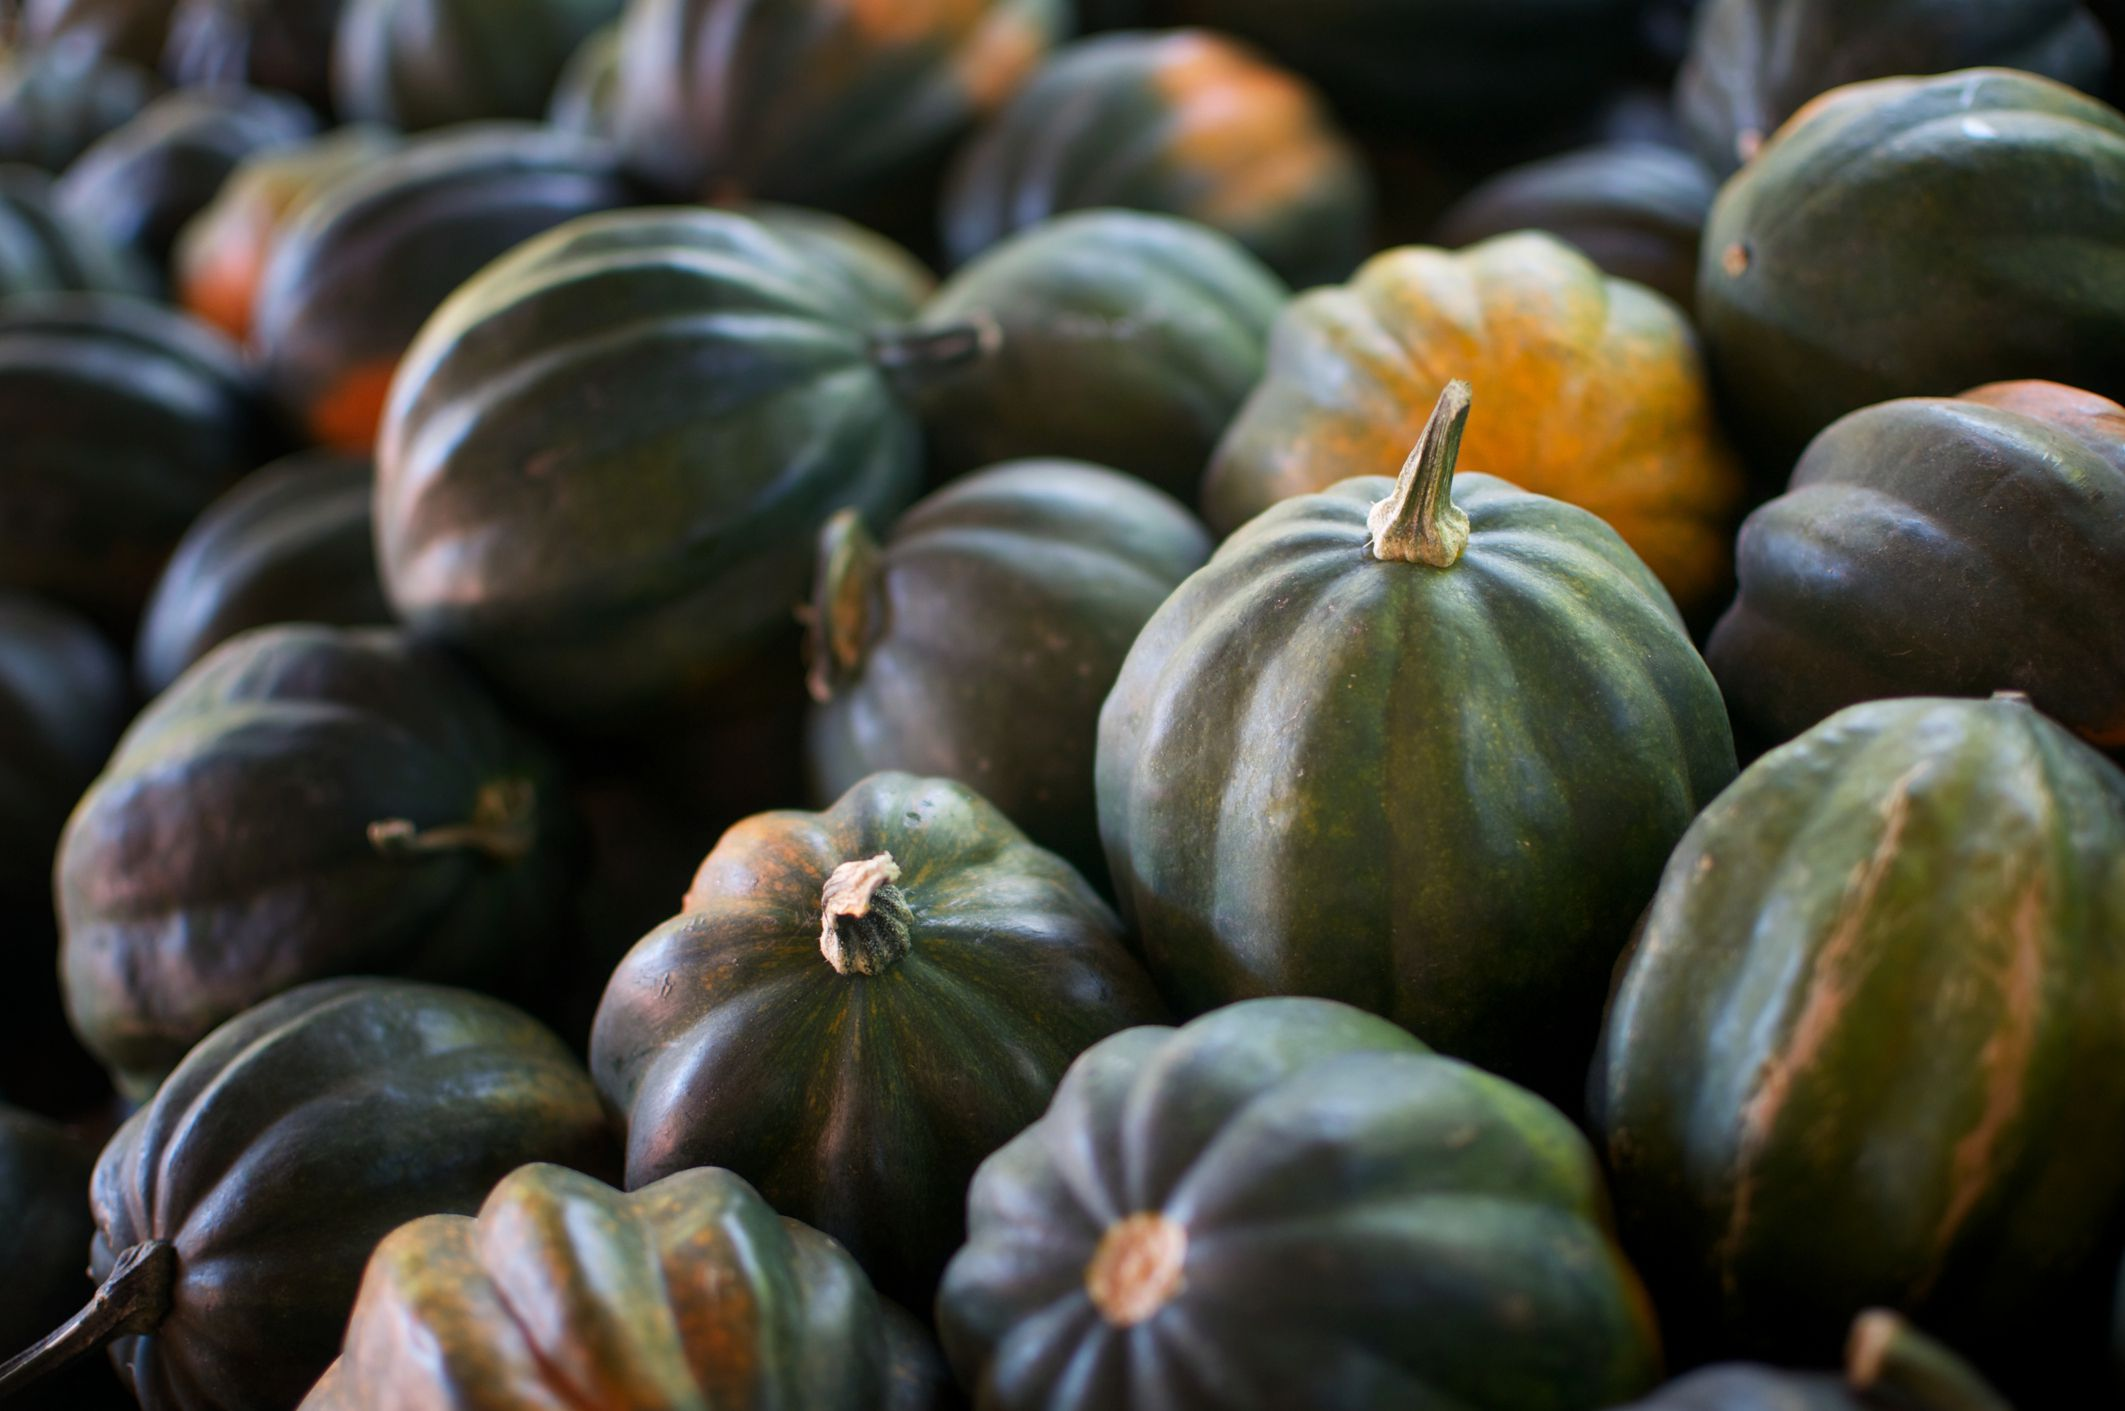 Useful Tips For Preparing And Cooking Acorn Squash